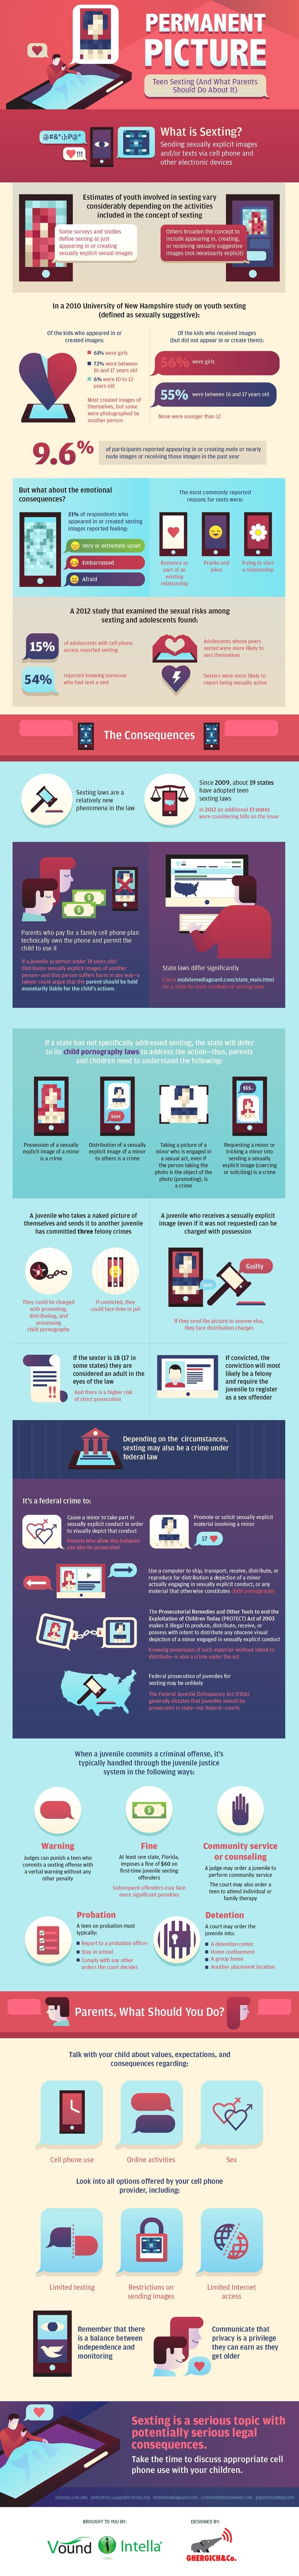 Permanent Picture: Teen Sexting and Parenting Tips to Protect Your Child #infographic